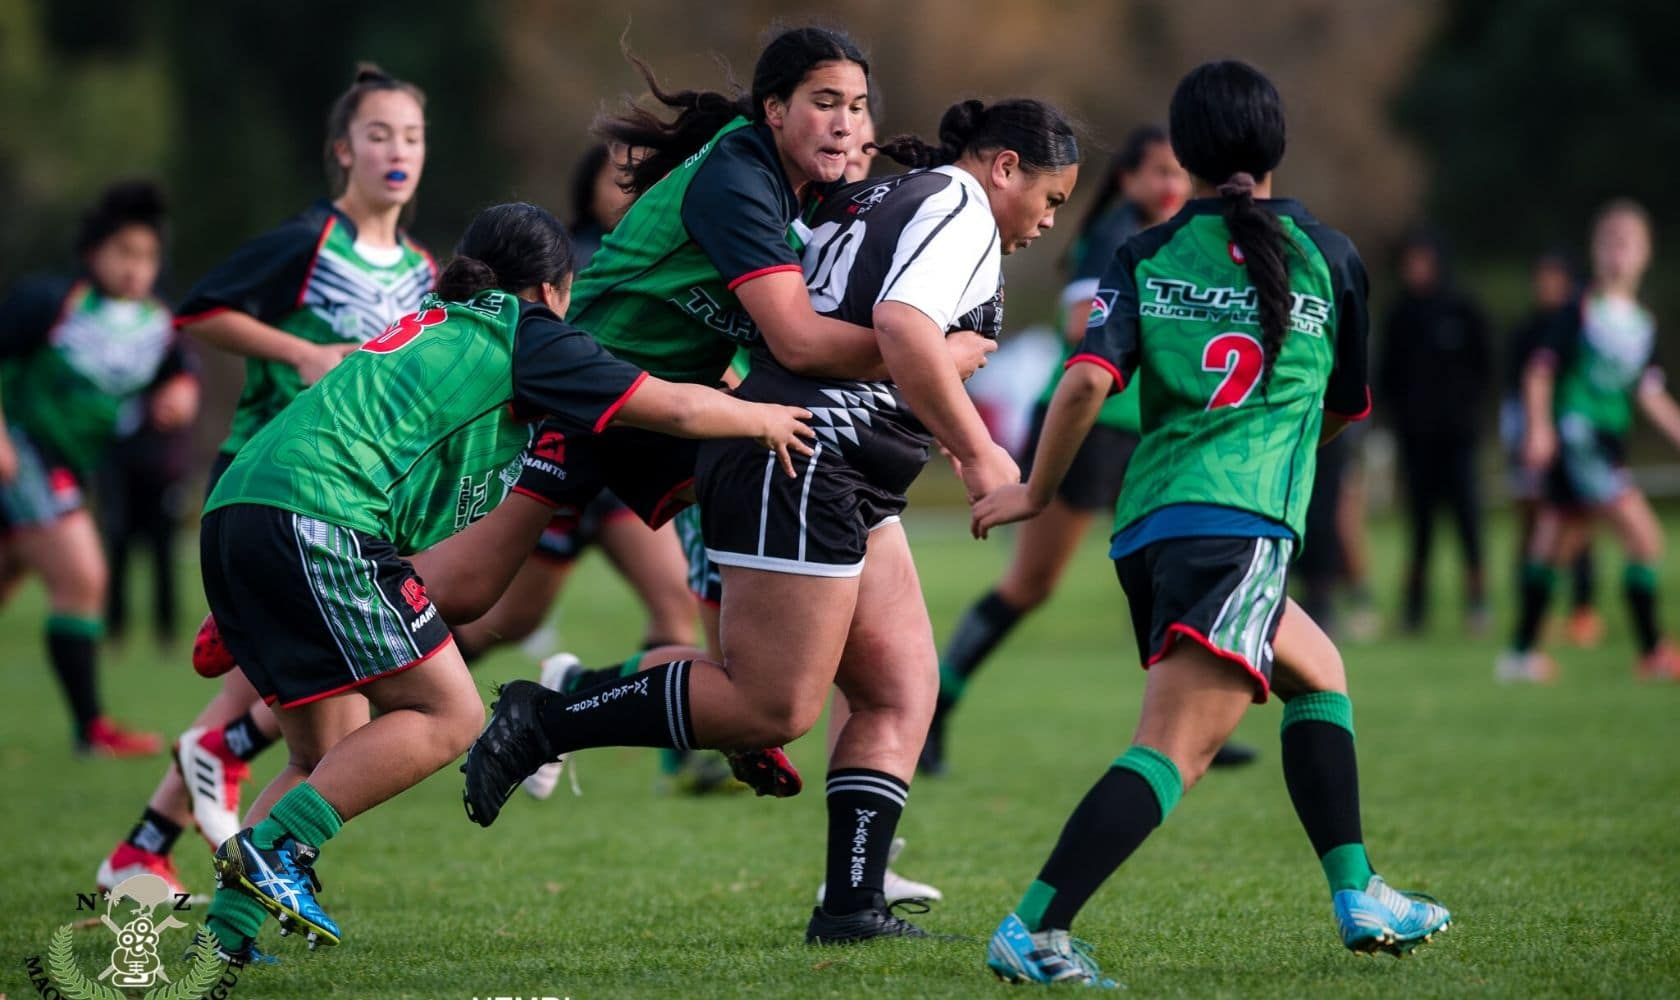 New Zealand Māori rugby league